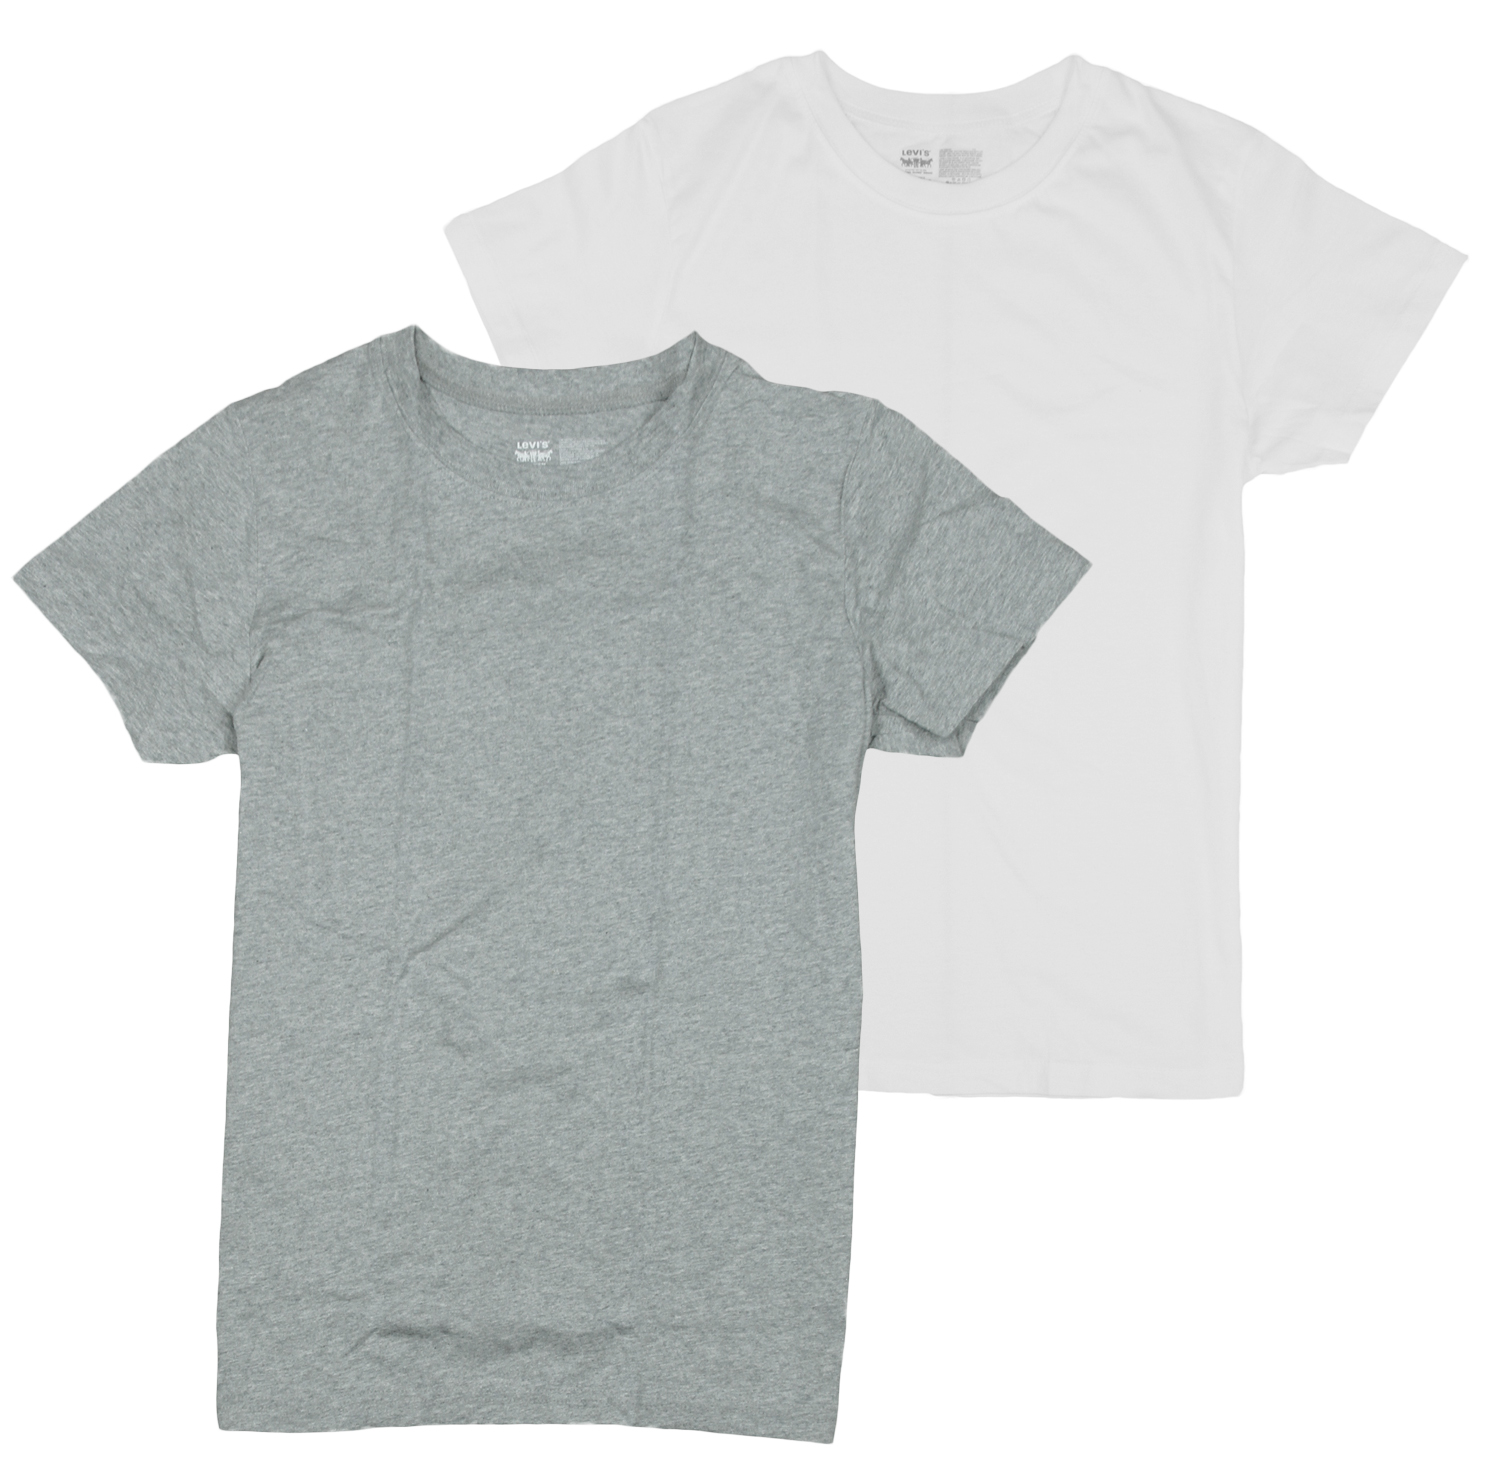 a5ba5bafaf5 Details about Levi's Youth Short Sleeve Classic Blank Tee Shirt - White &  Gray - 2 Pack